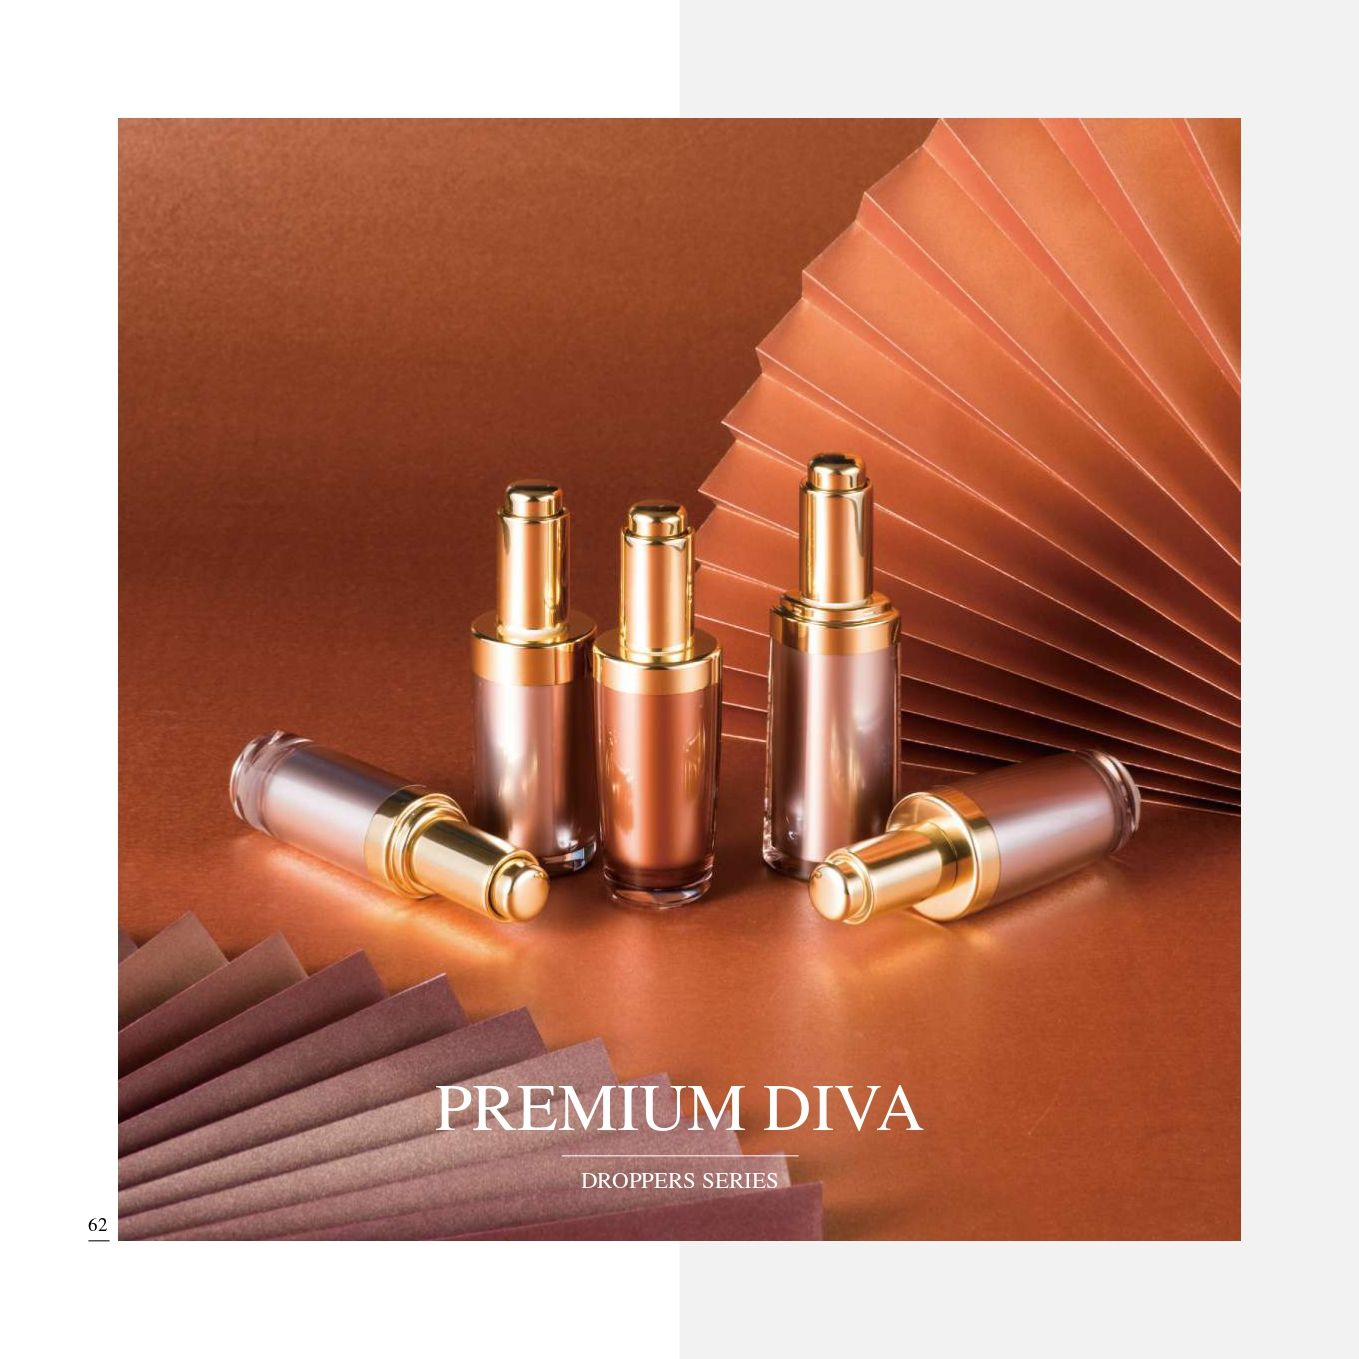 Luxury Cosmetic Dropper Packaging Series - Cosmetic Packaging Collection - Premium Diva